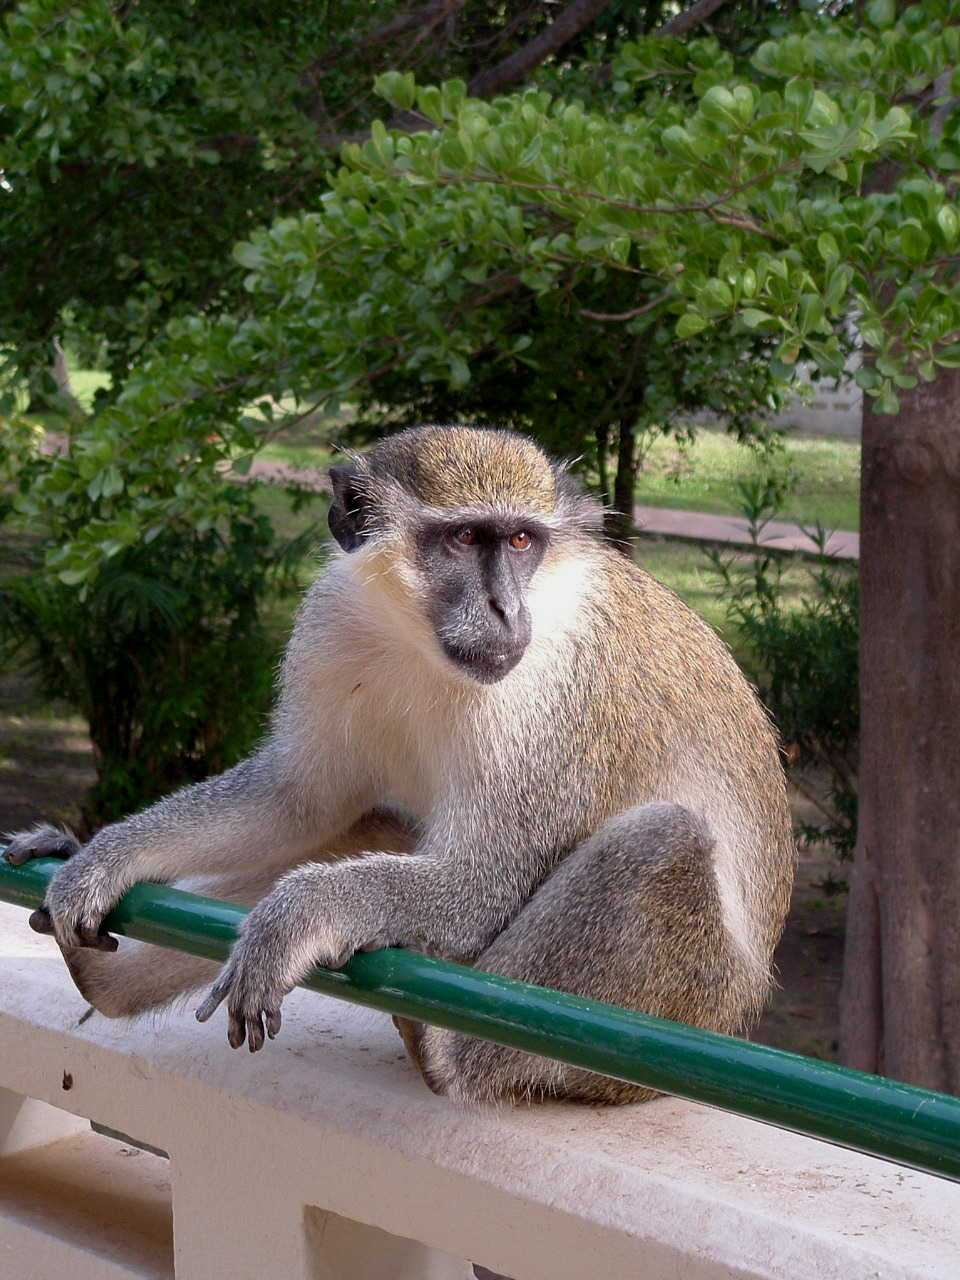 VIsitor on my hotel railing in the Gambia.